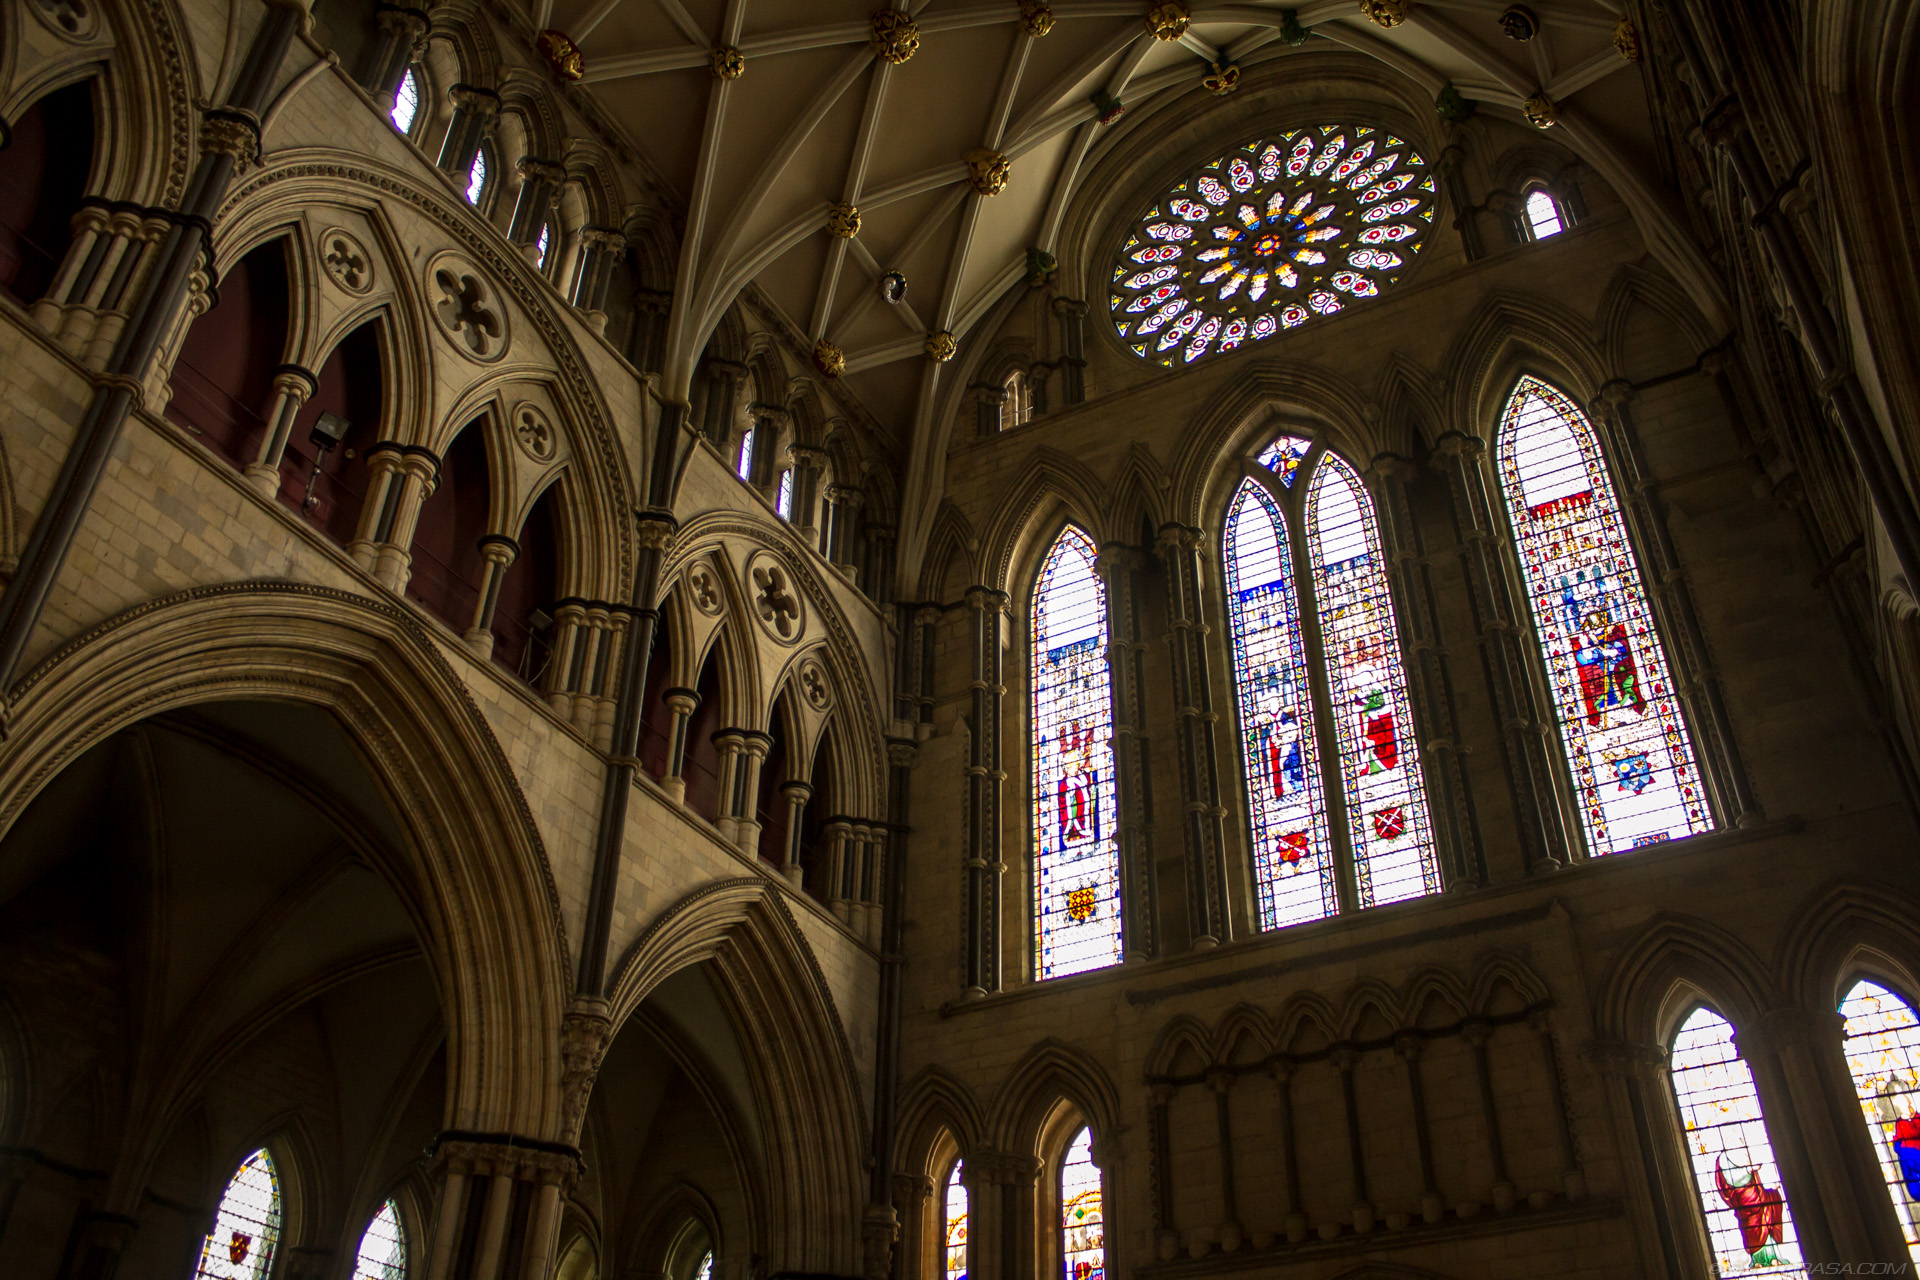 http://photorasa.com/yorkminster-cathedral/north-transept-five-sisters-window/